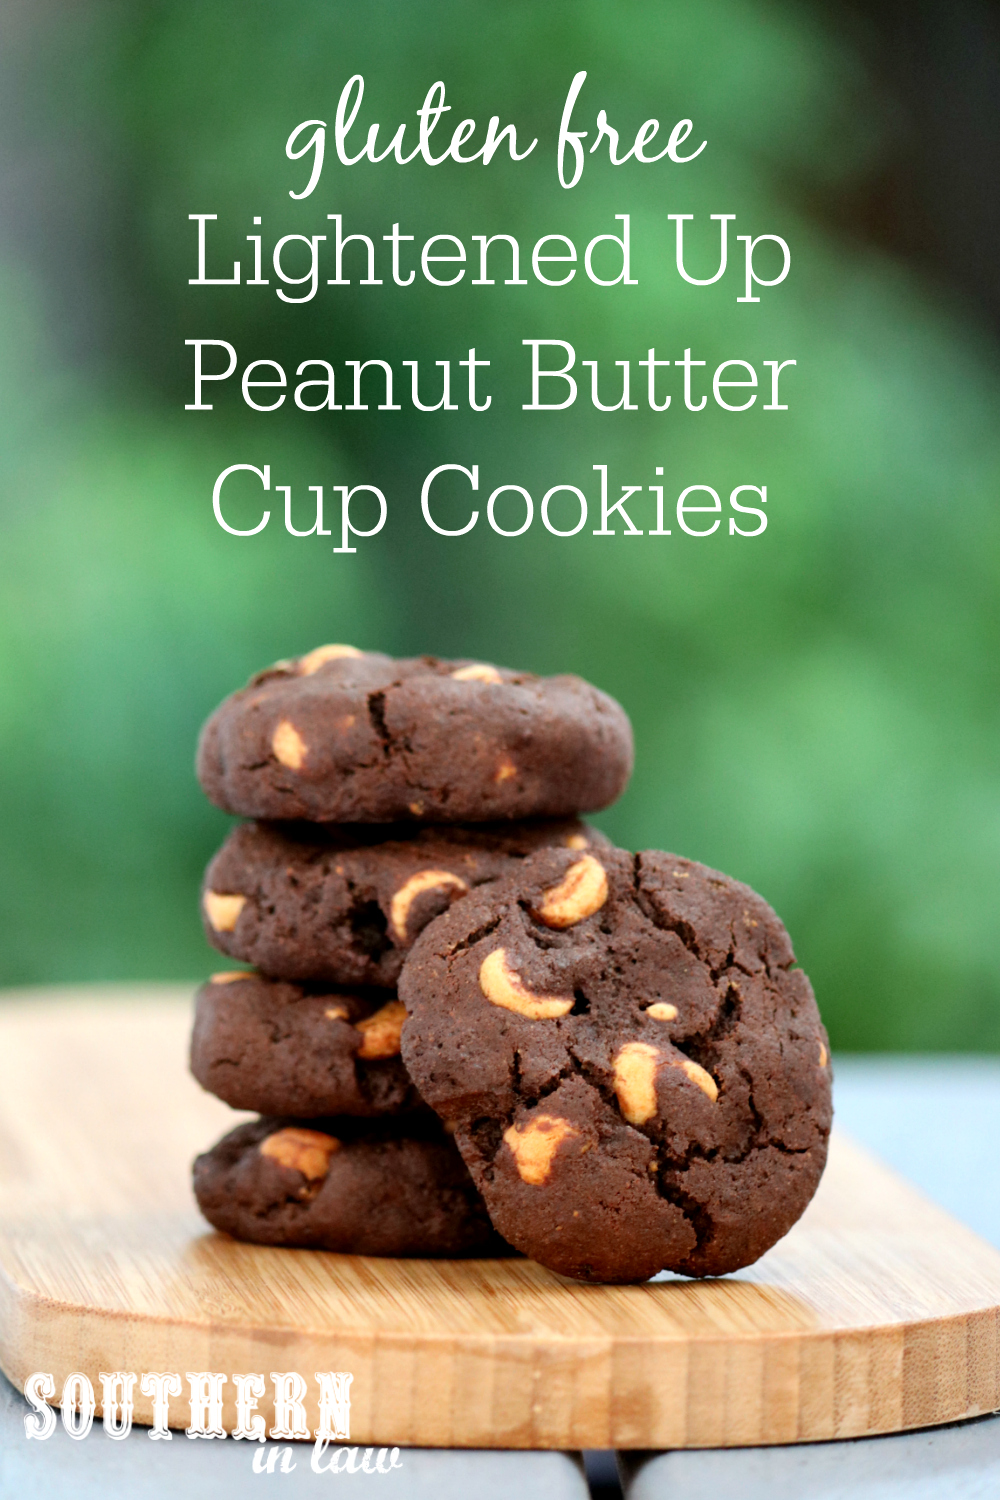 Easy Chocolate Chip Cookies Peanut Butter